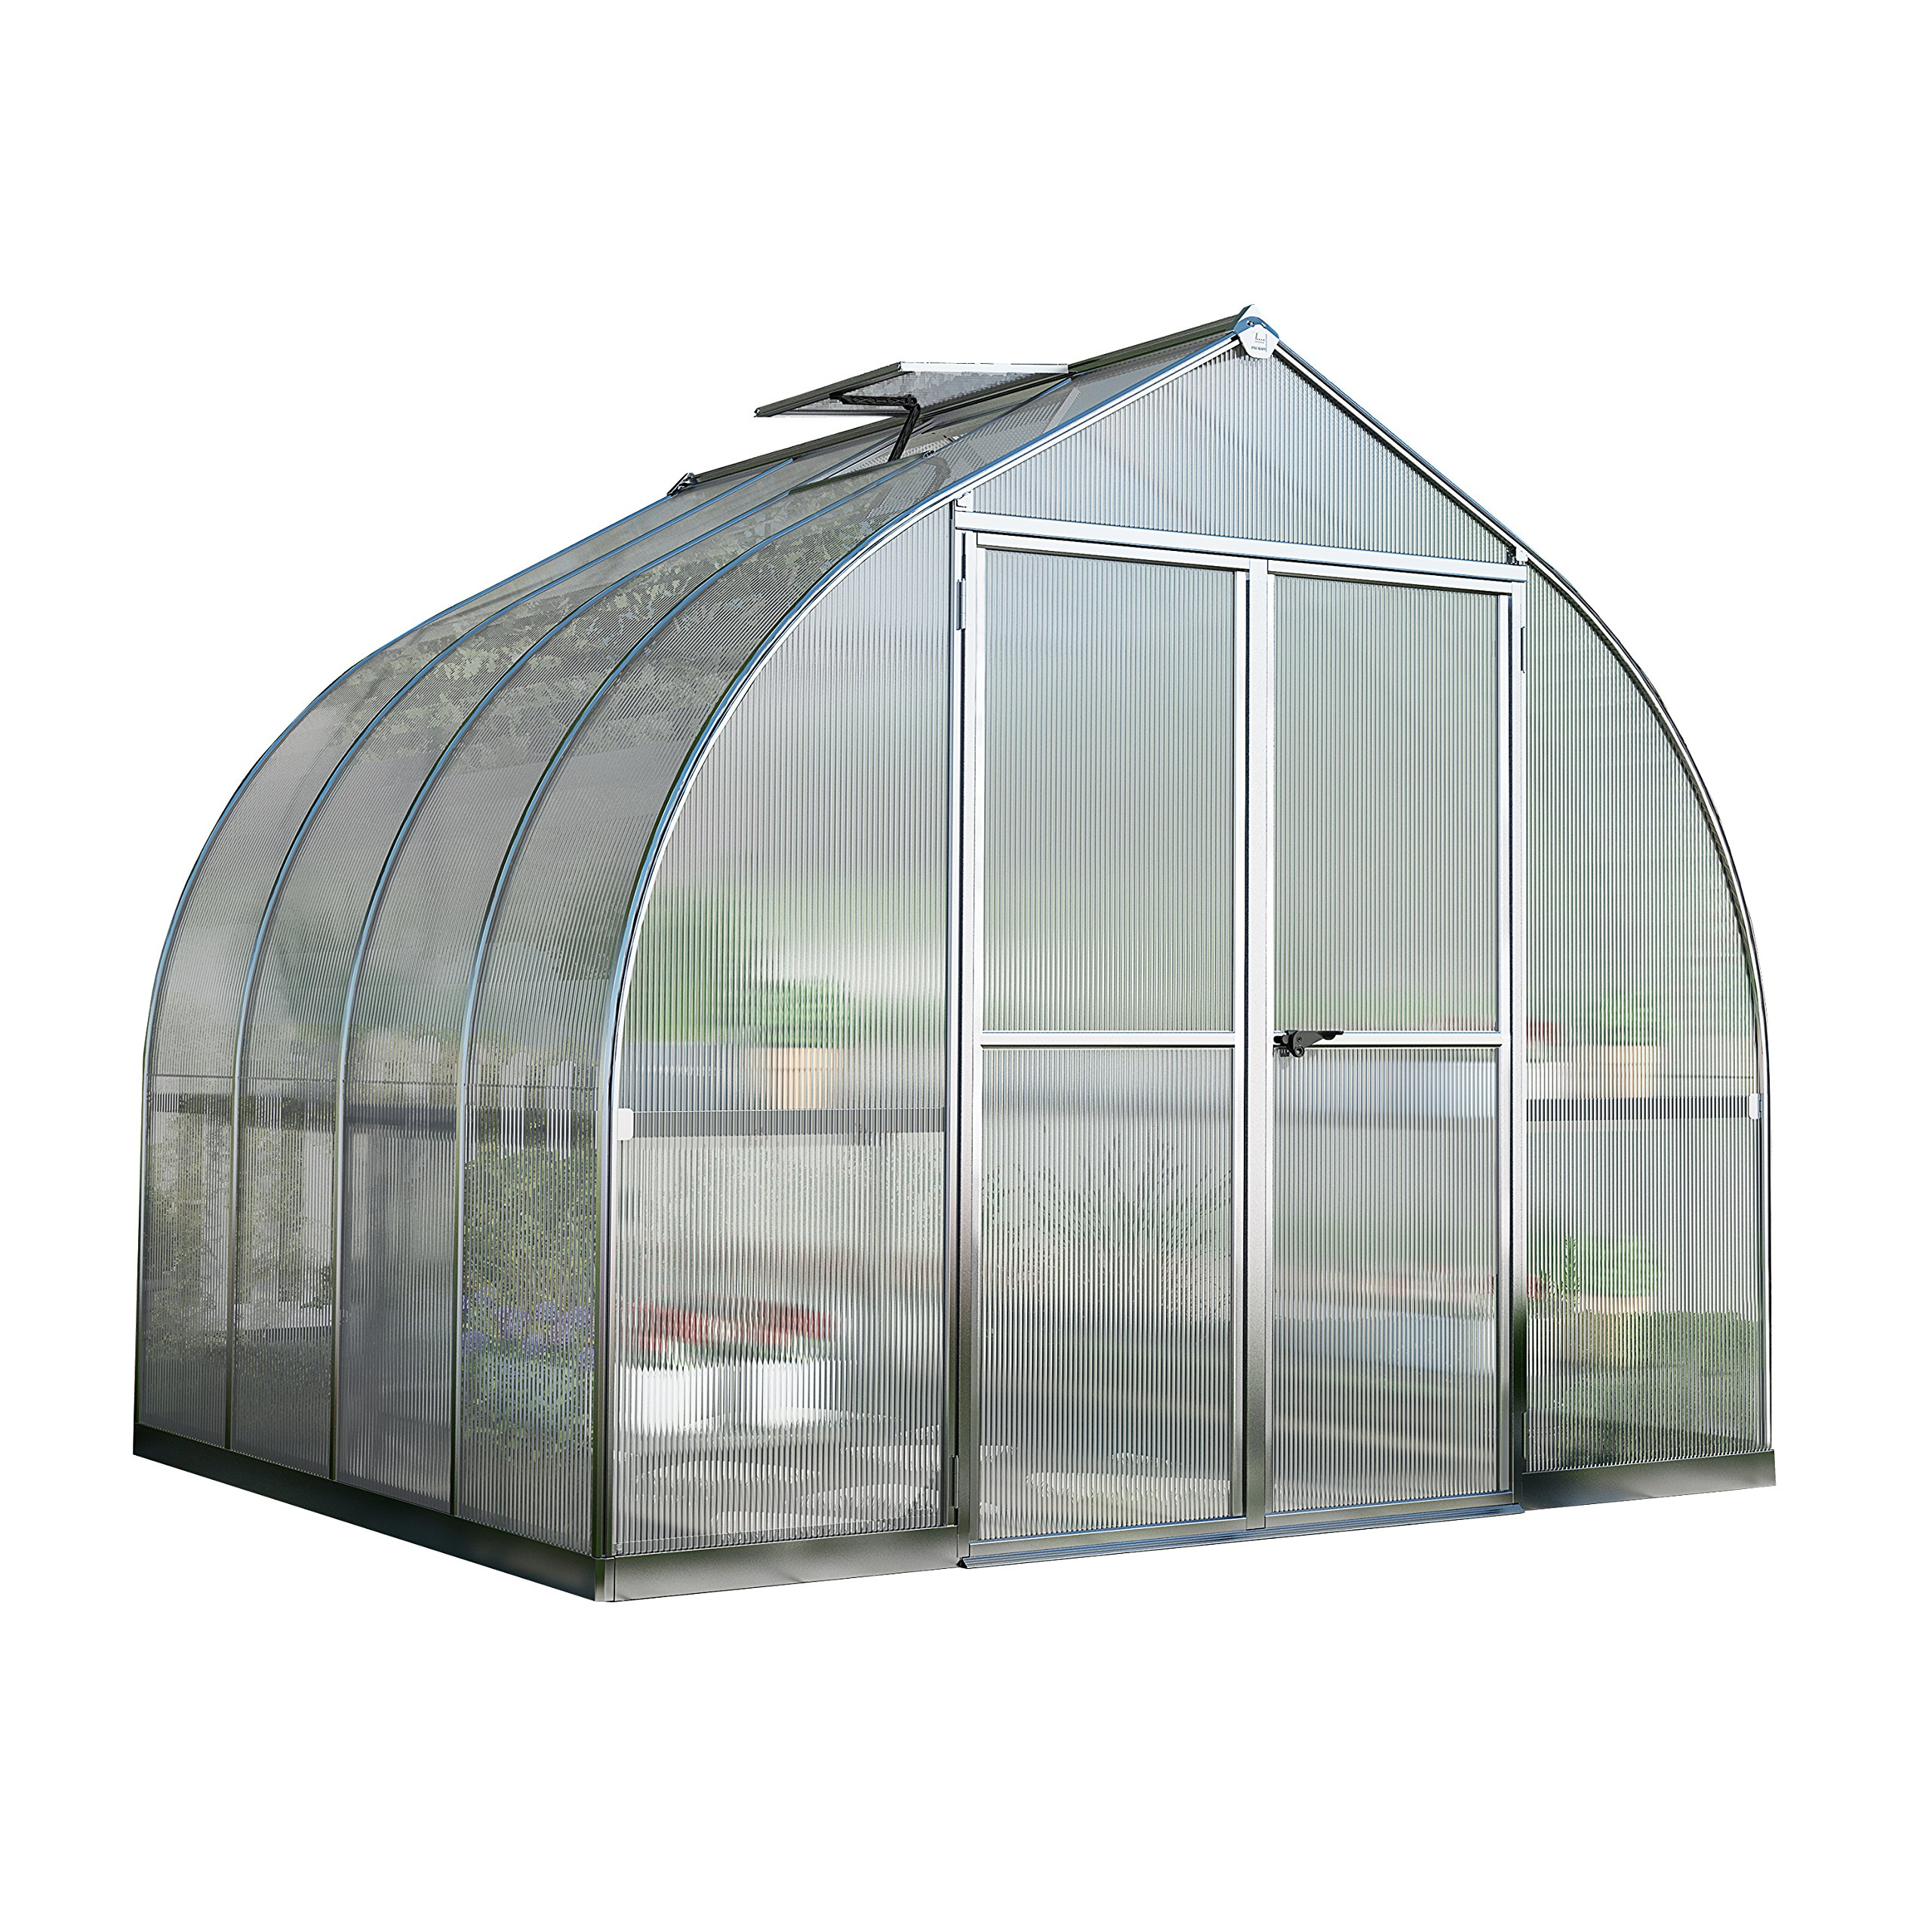 Palram Bella Hobby Greenhouse, 8' x 8', Silver with Twin Wall Glazing